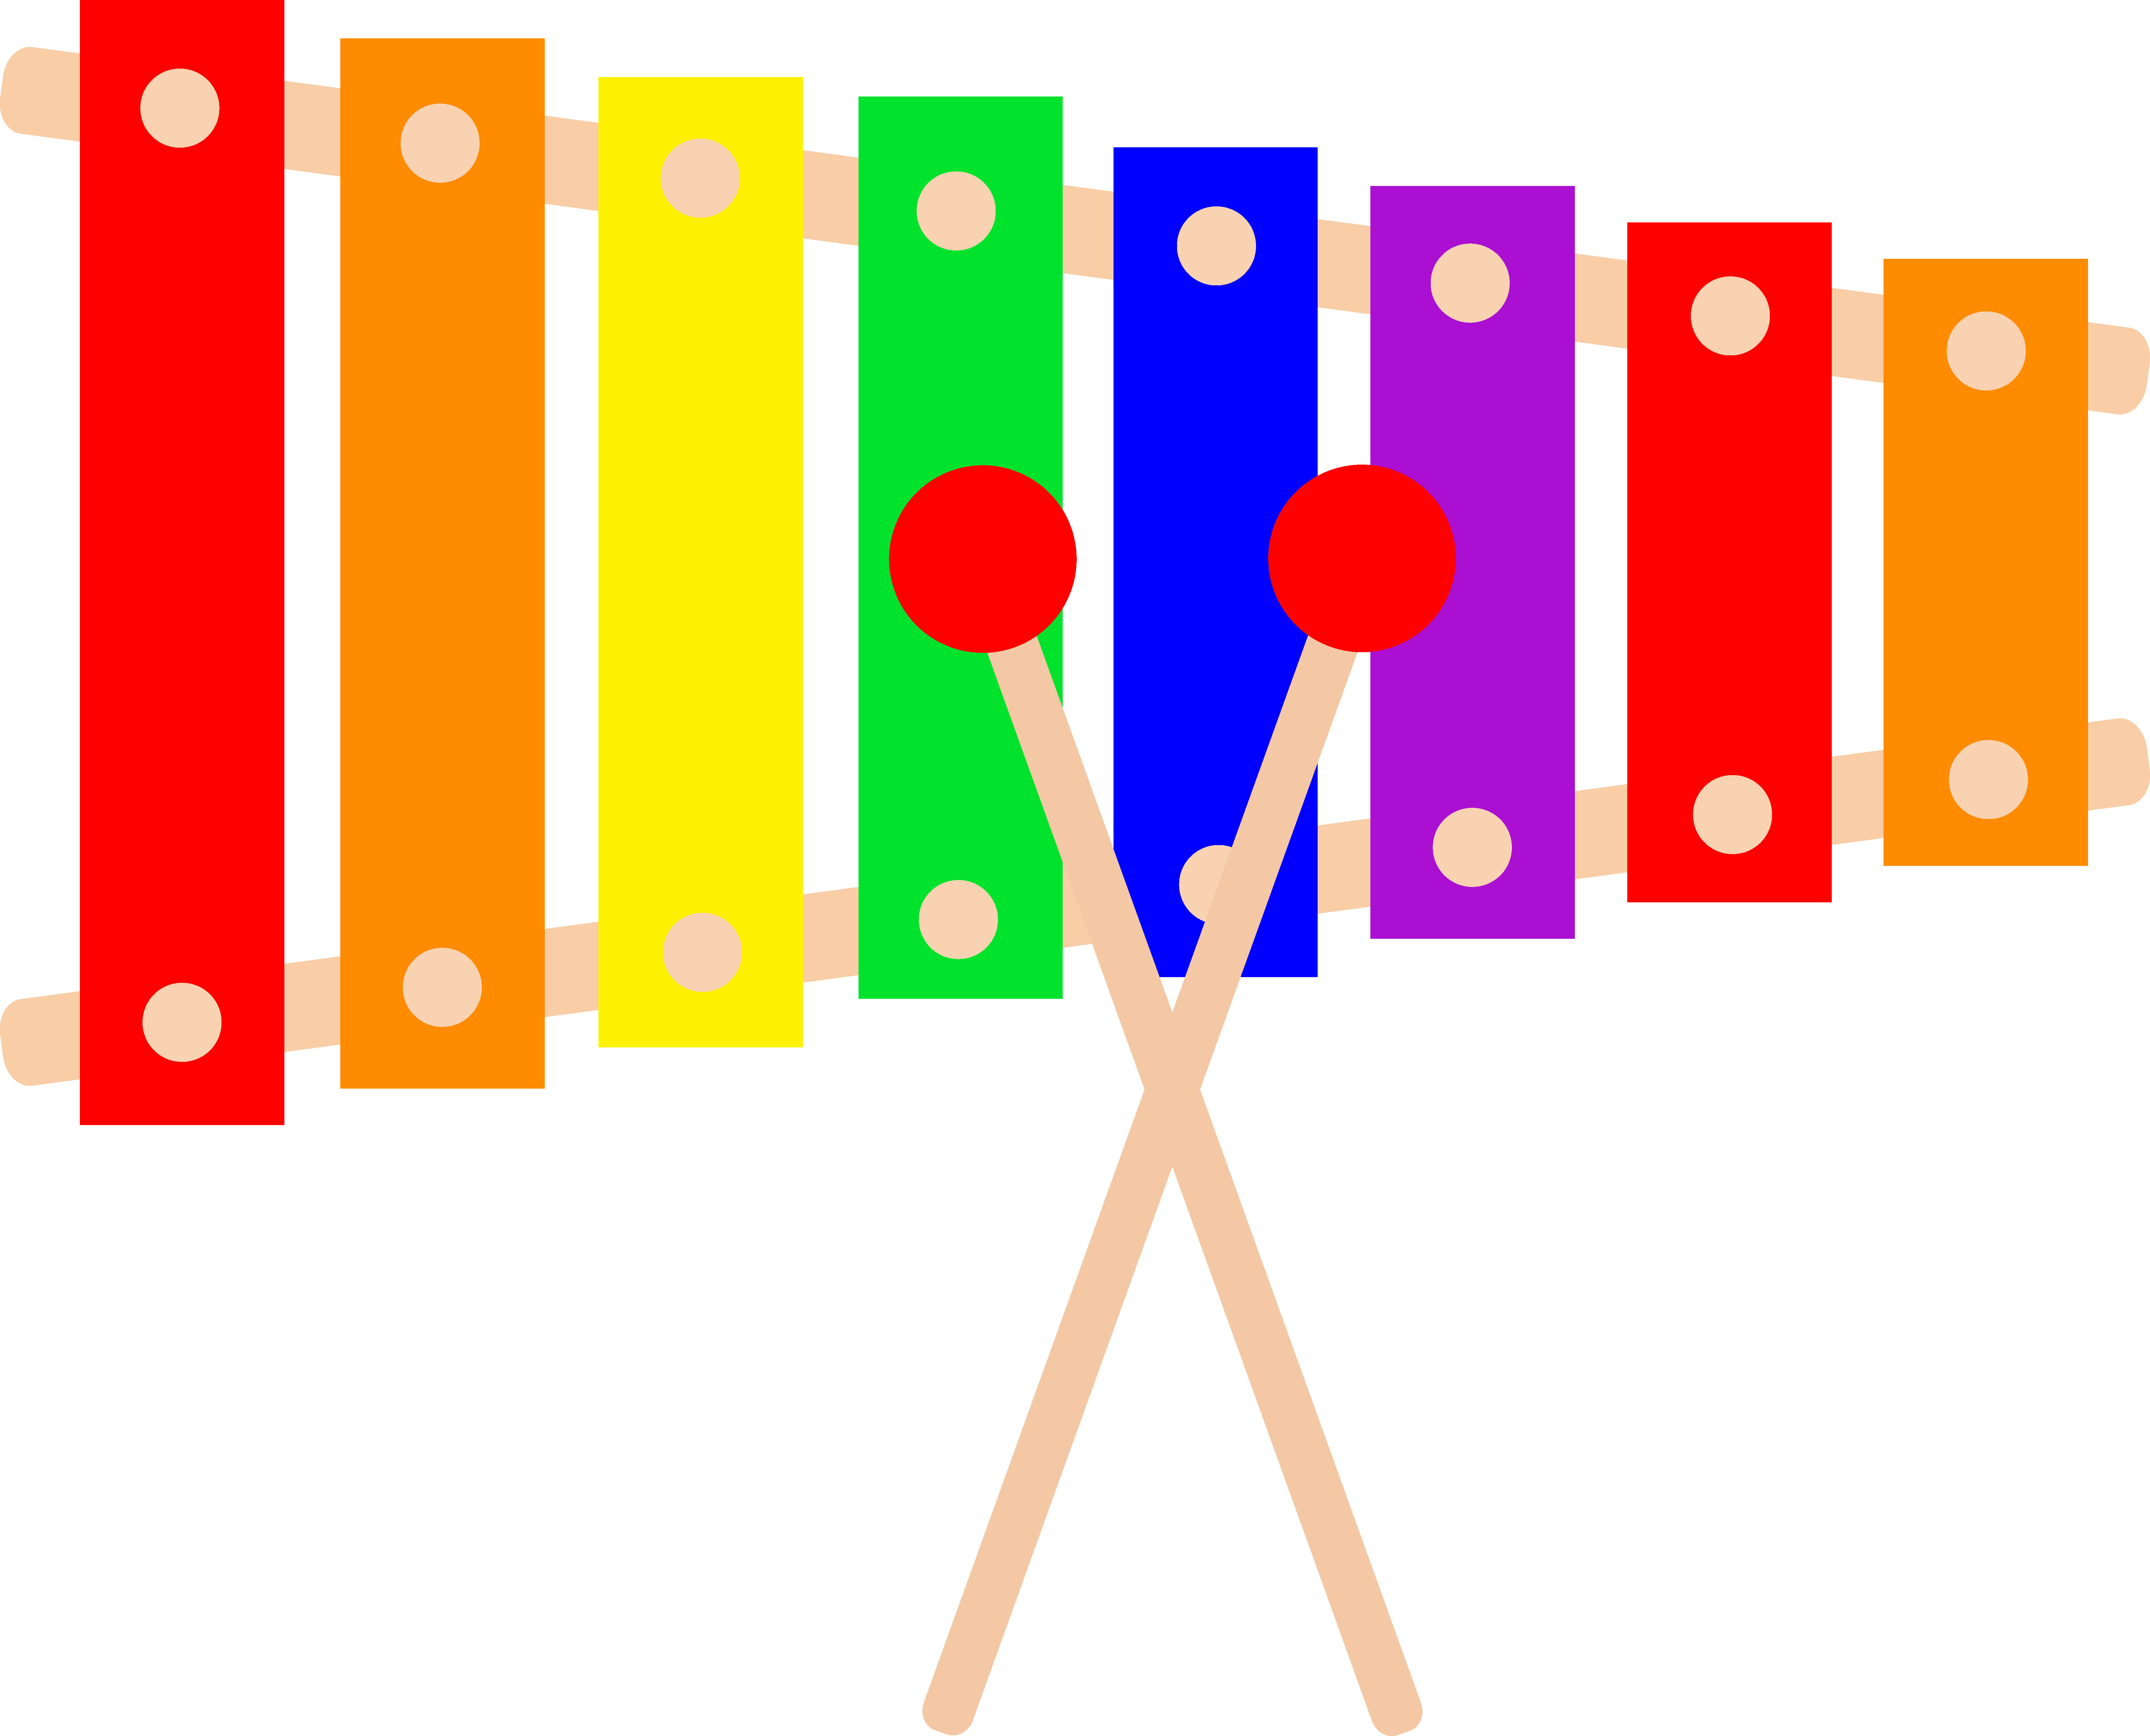 Clipart Of Xylophone.